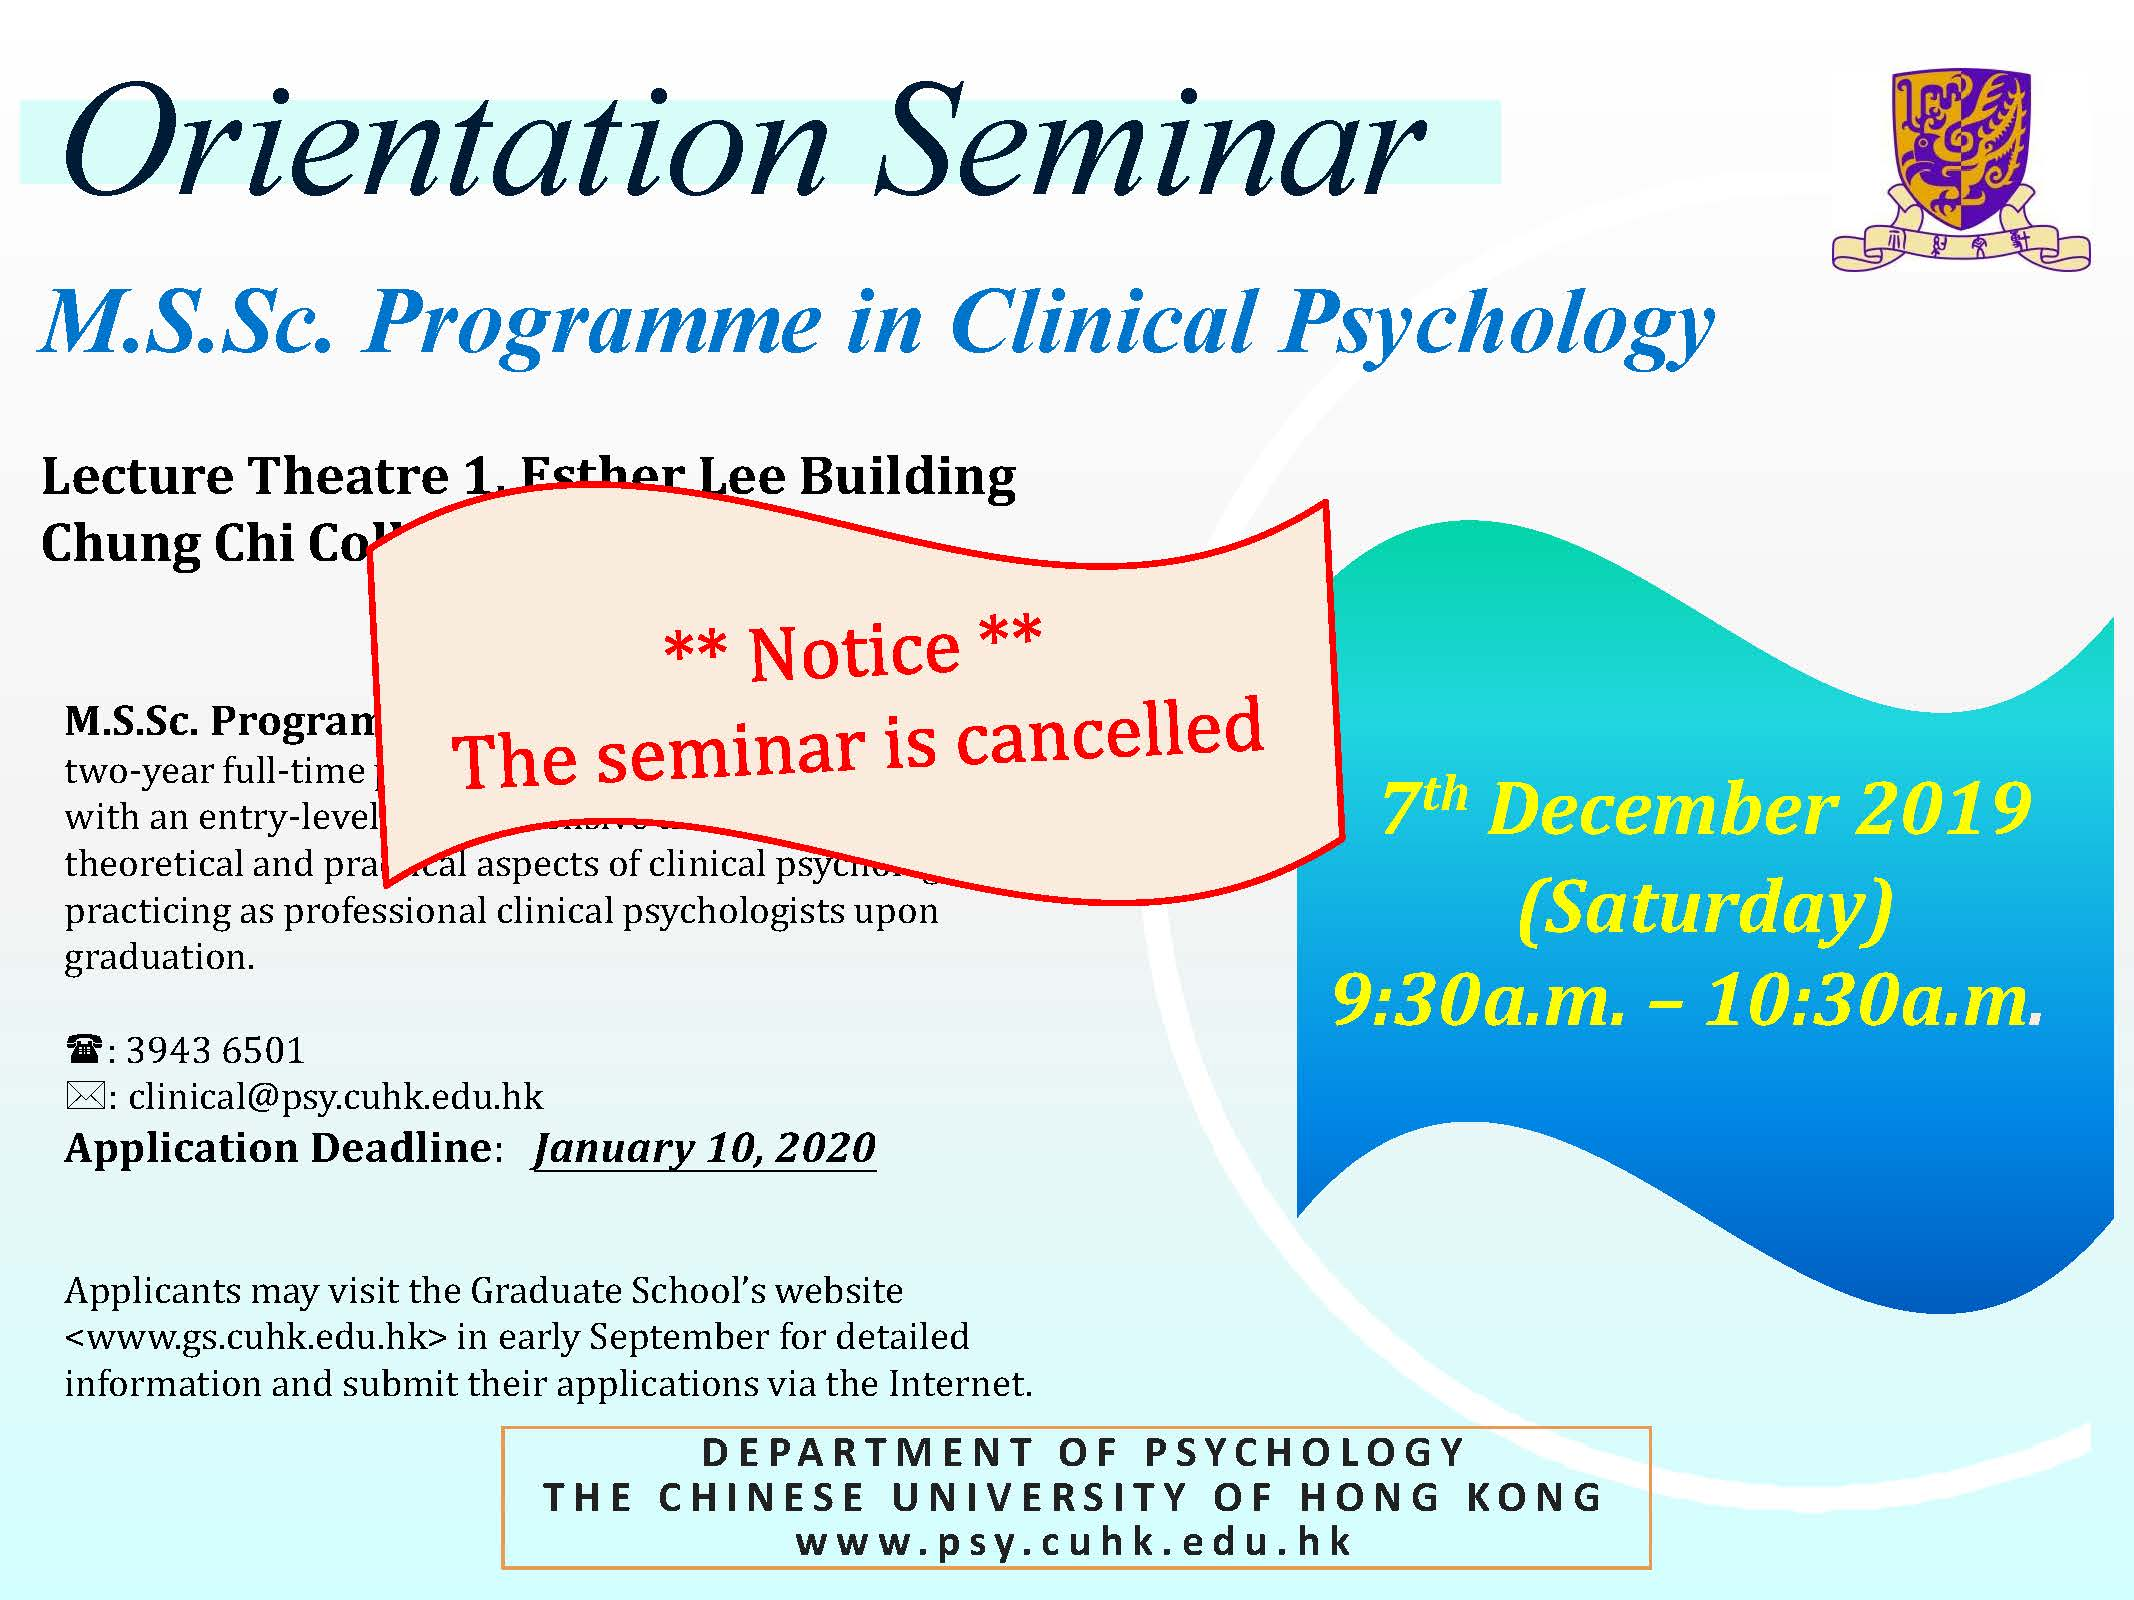 Orientation Seminar - M.S.Sc Programme in Clinical Psychology - Cancelled